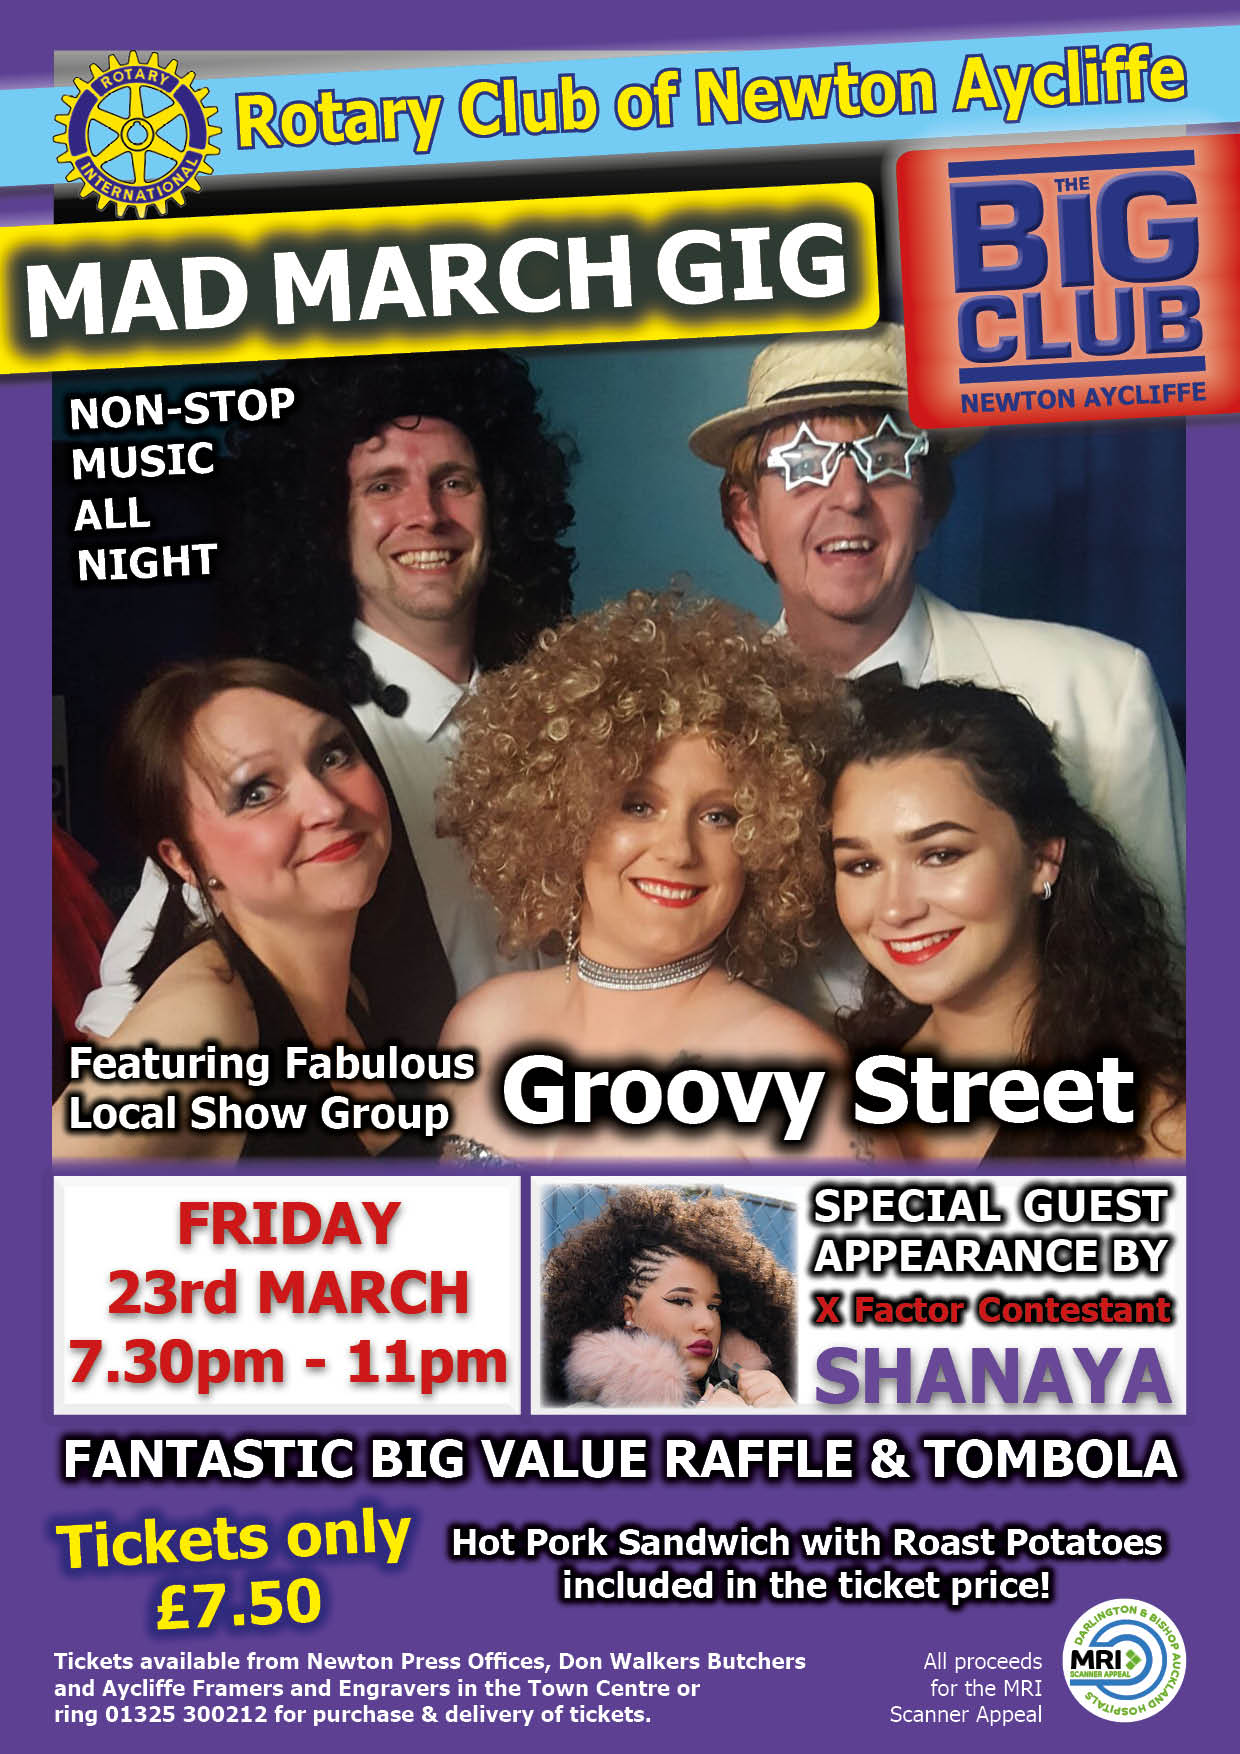 50% of Tickets Sold for Mad March Gig at Big Club